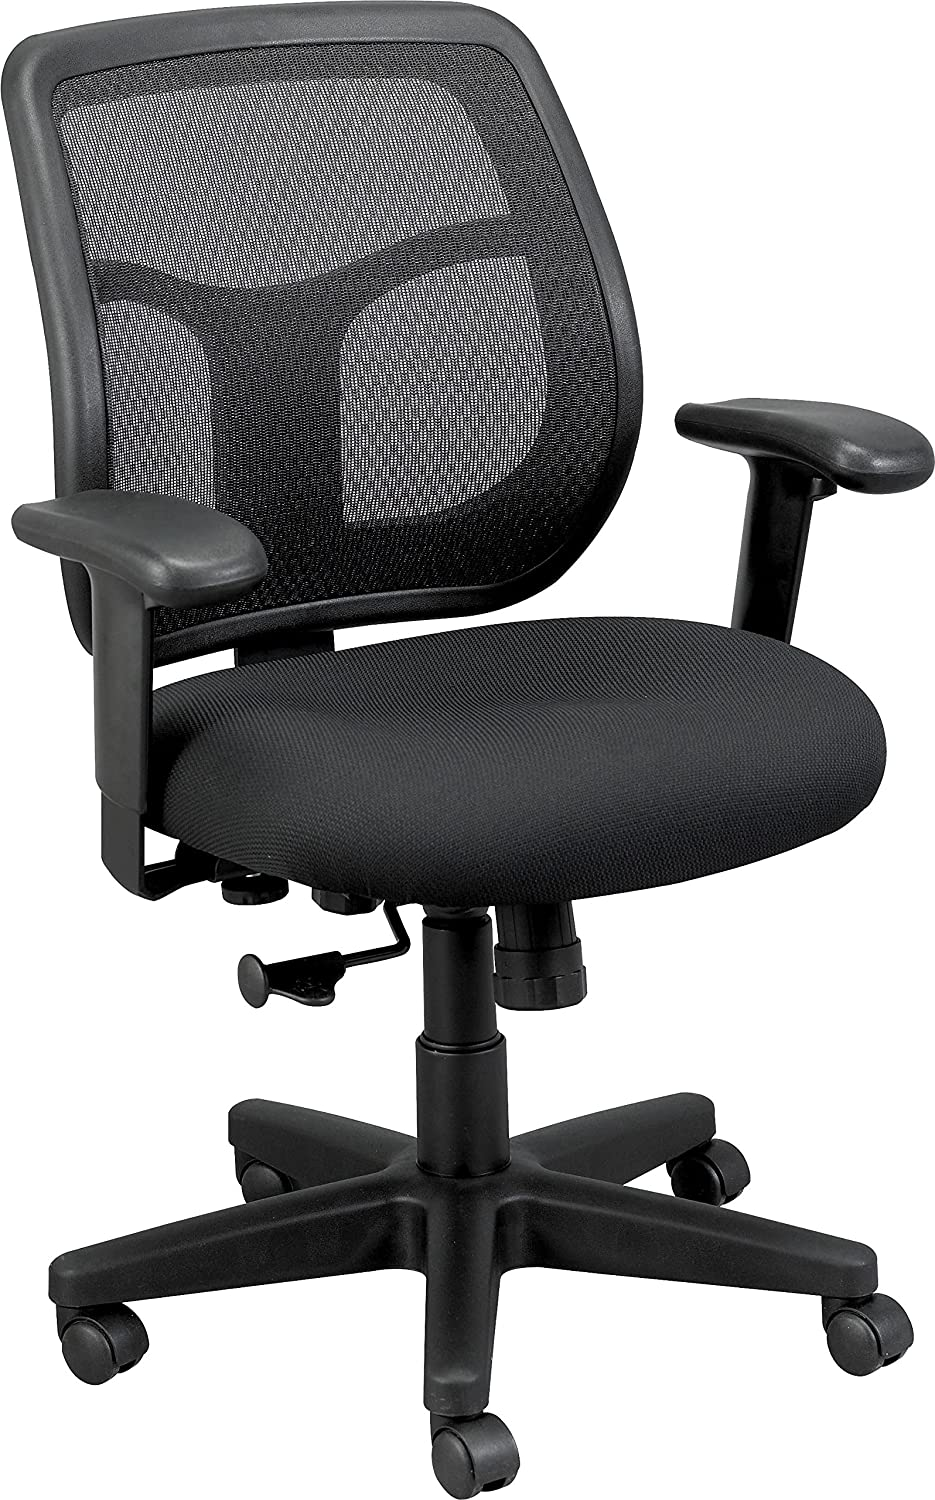 Excellent Eurotech Seating Apollo Midback Swivel Chair Black Beatyapartments Chair Design Images Beatyapartmentscom